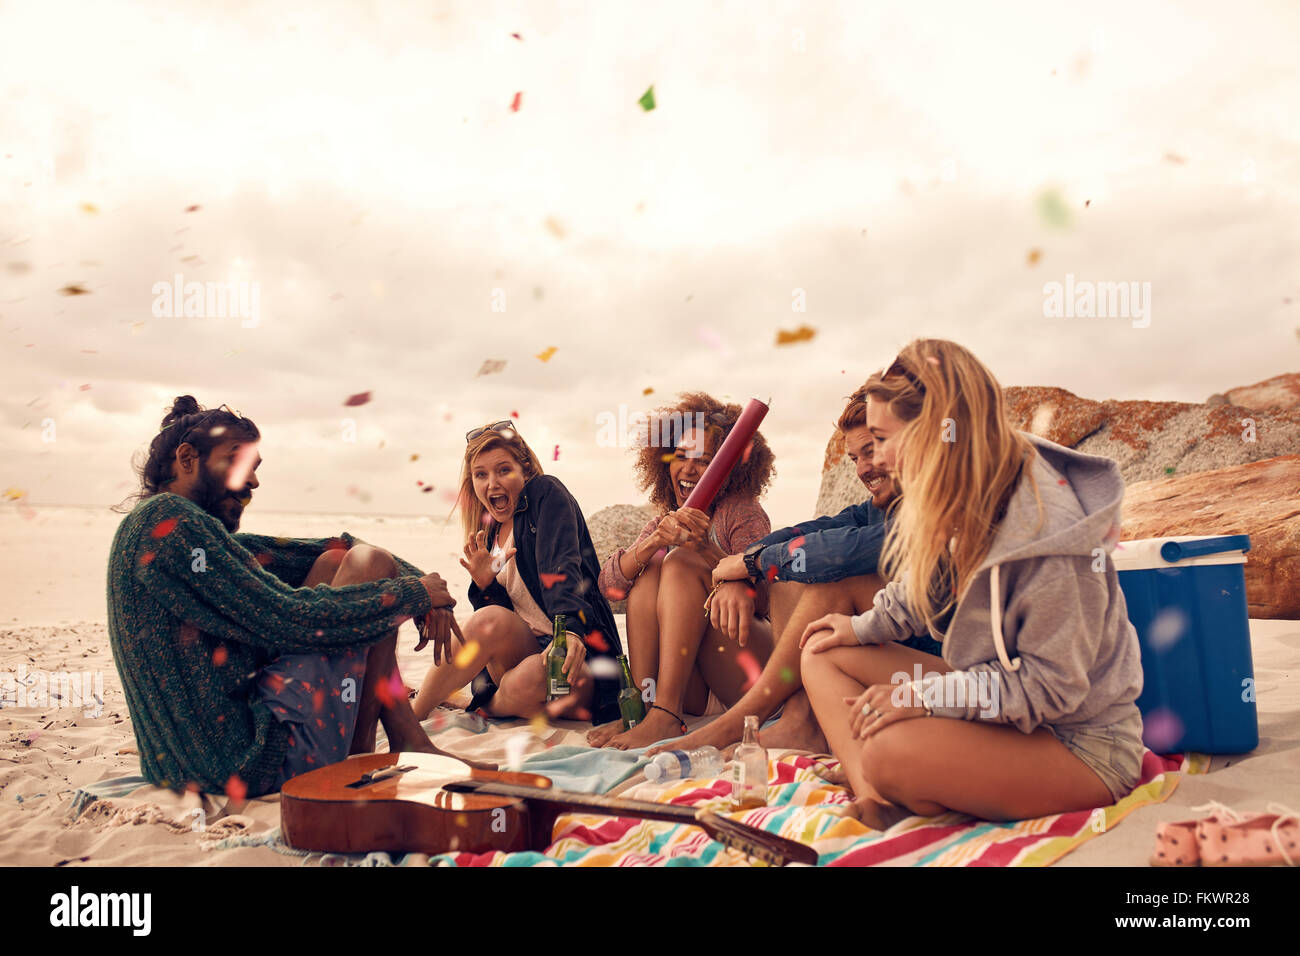 Happy friends partying on the beach with drinks and confetti. Happy young people having fun at beach party, celebrating - Stock Image